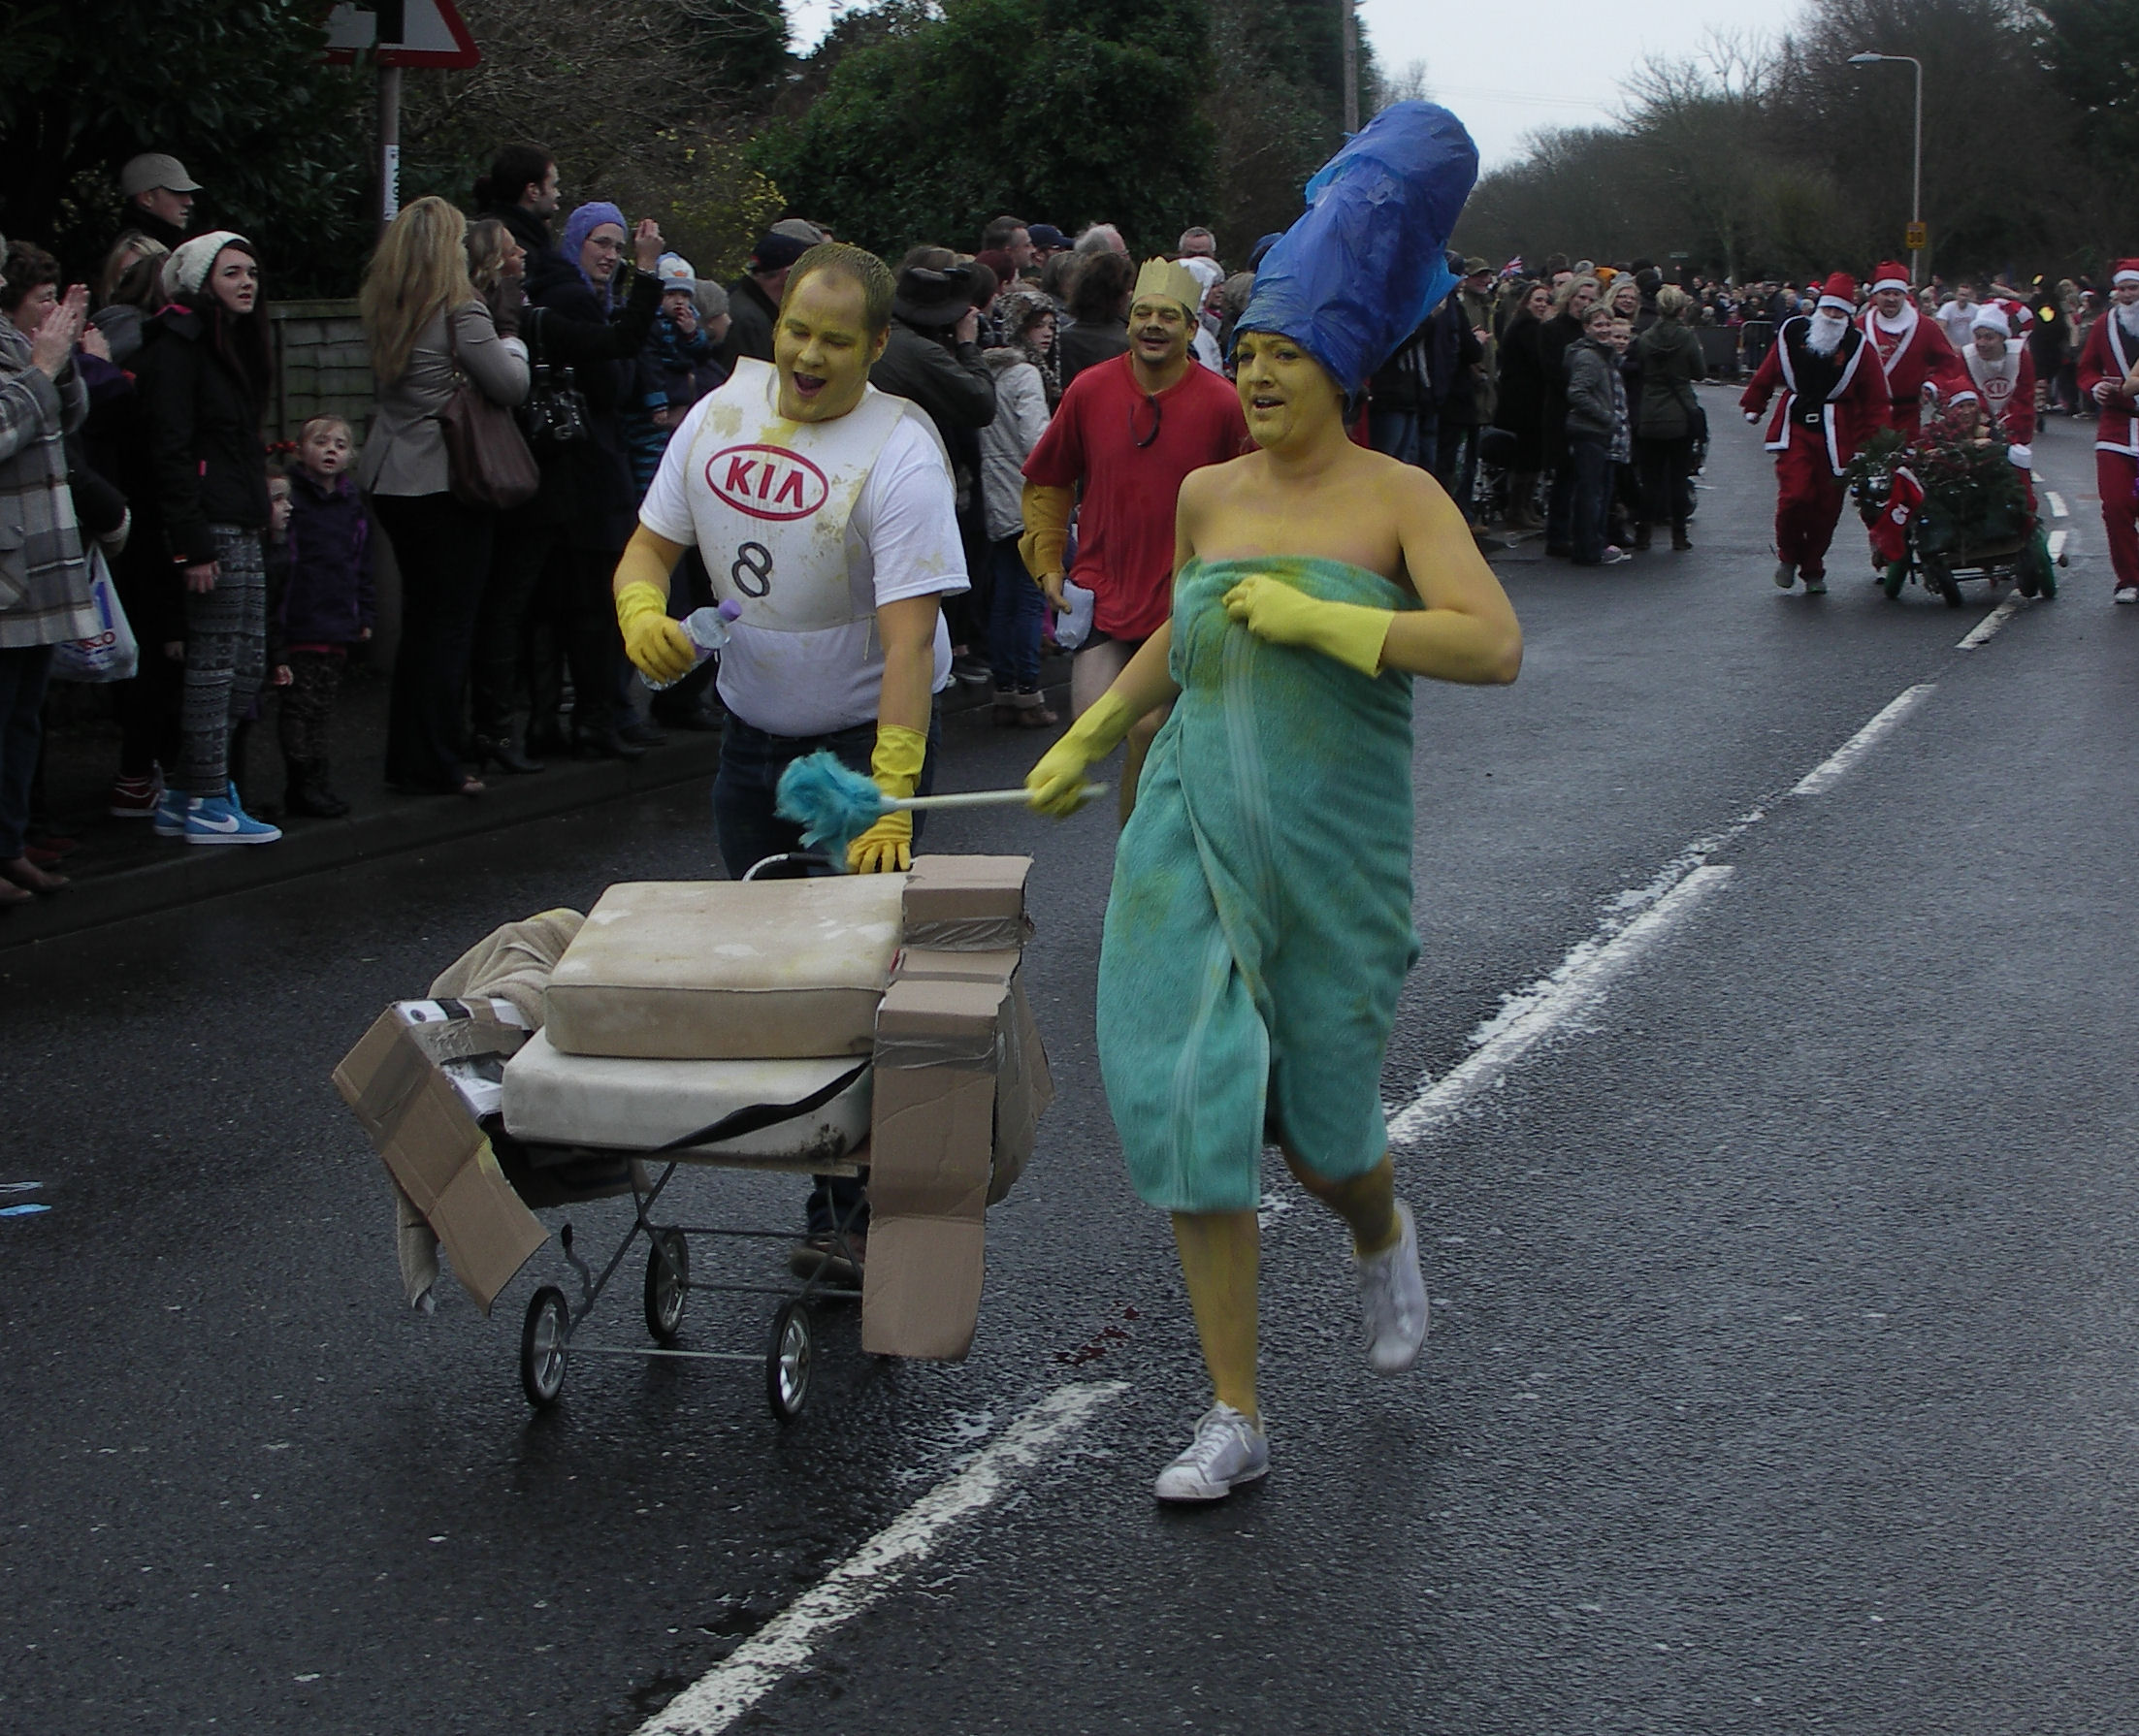 http://www.paghampramrace.com/wp-content/uploads/2018/04/PICT0083.jpg